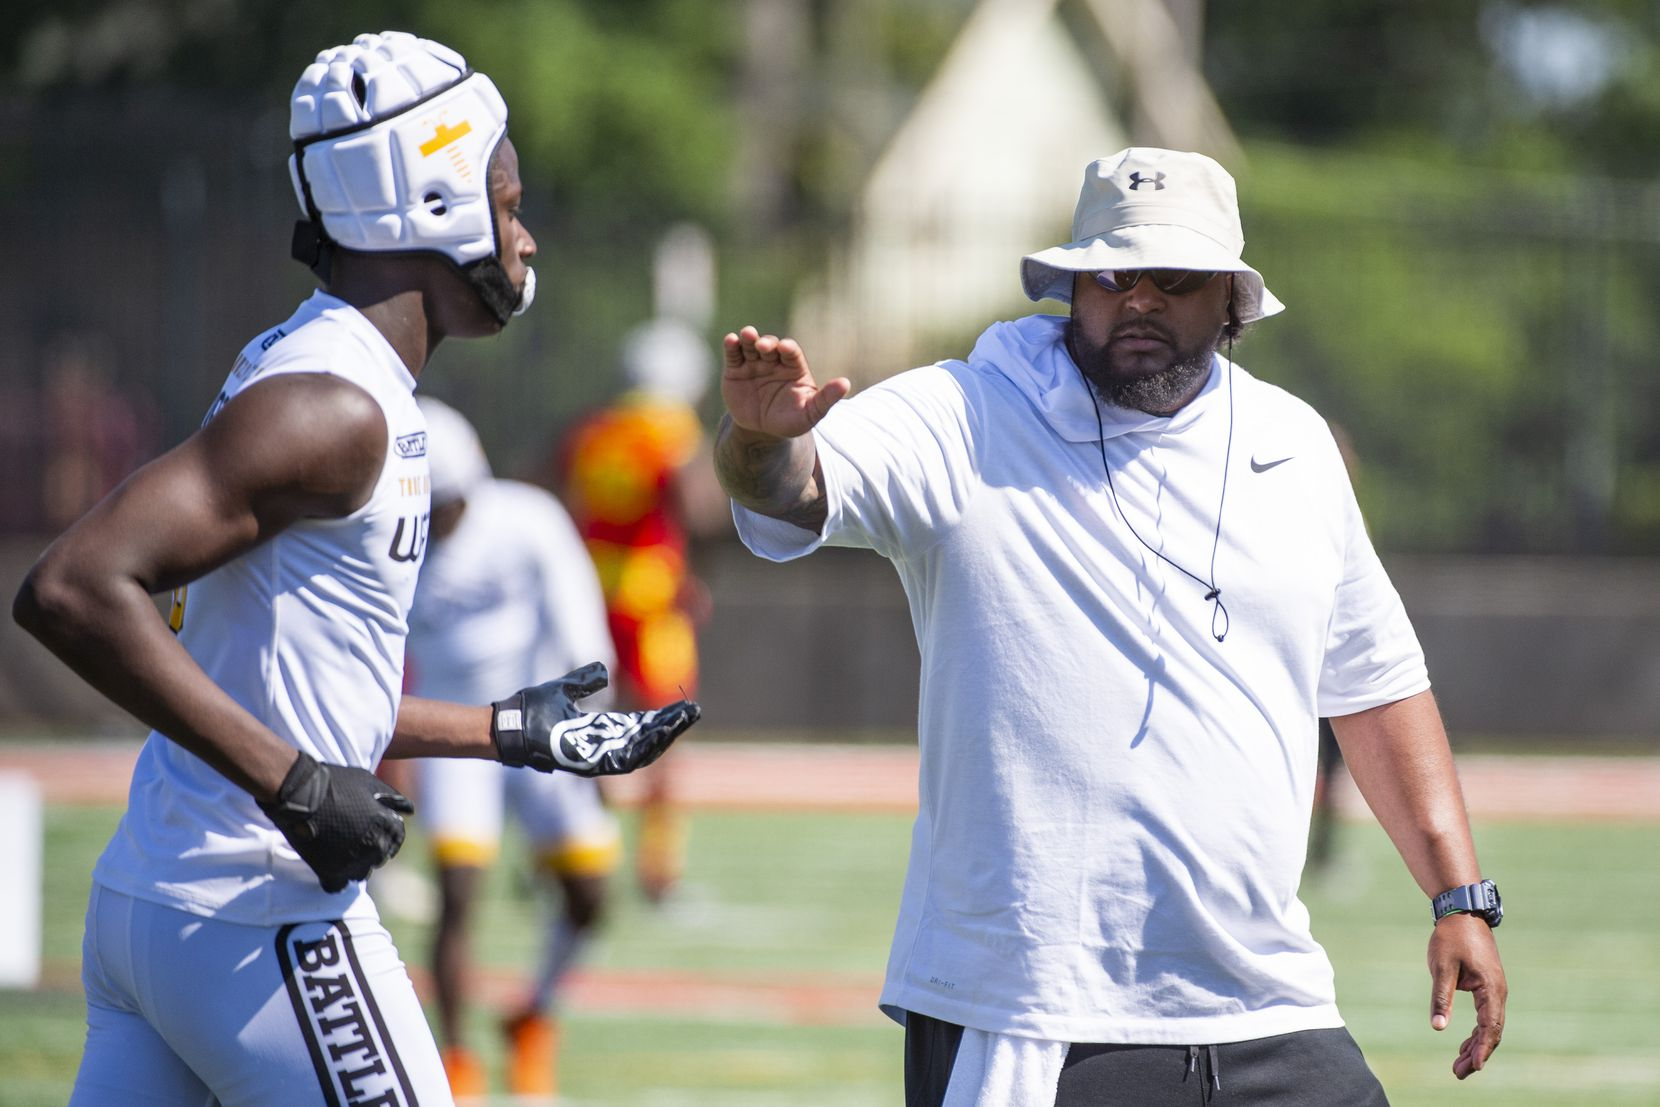 True Buzz coach Bell Cobbs congratulates Tristan Golightly after scoring a touchdown  during the Pylon 7v7 National Championship event held at Woodward Academy in Atlanta, Georgia, on May 26, 2019.